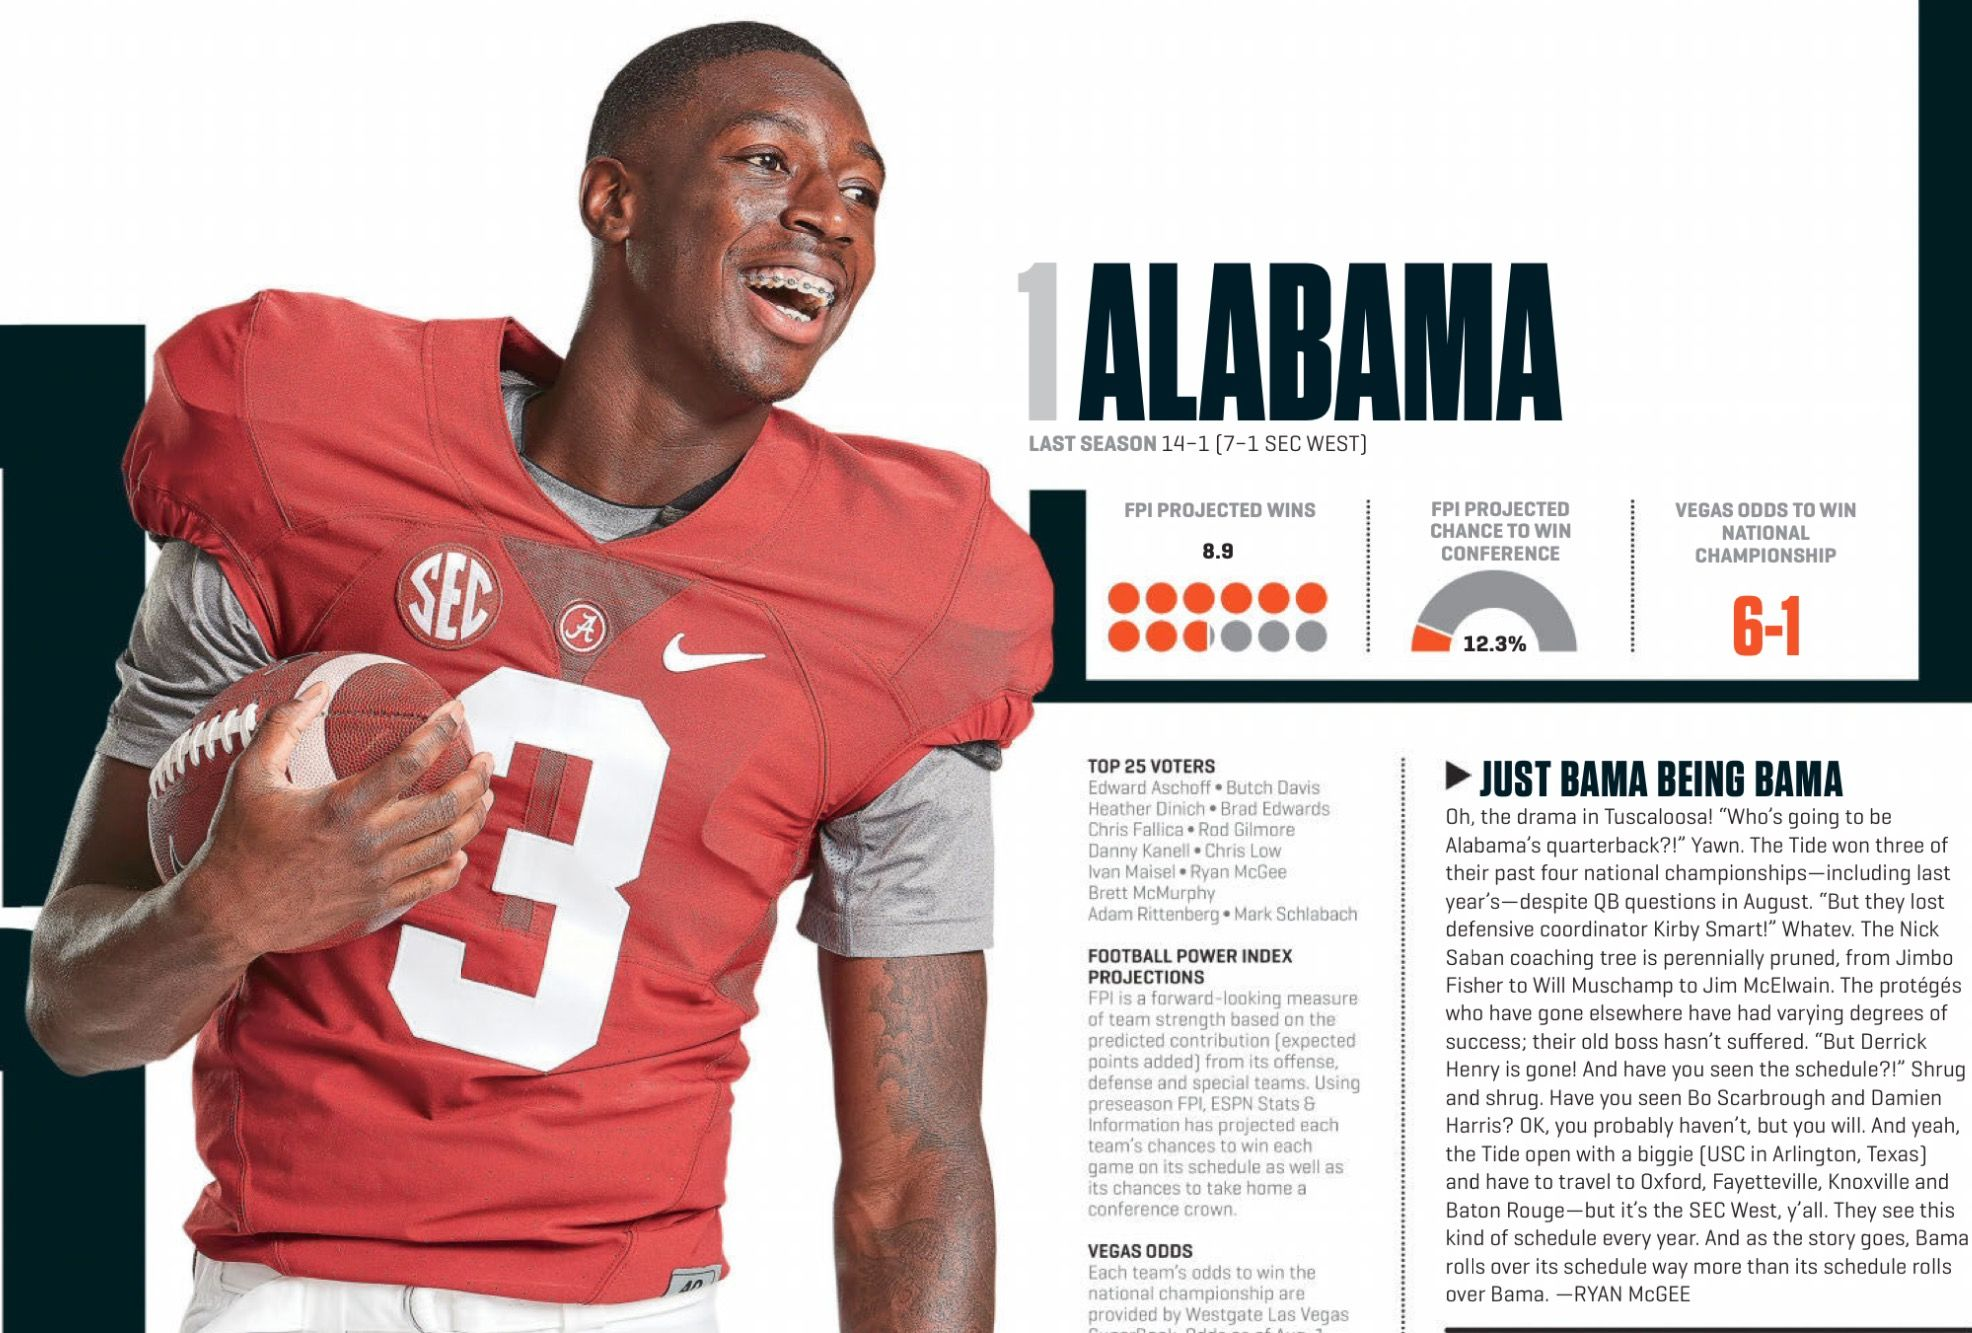 Alabama Crimson Tide 2016 Preseason 1 Via Espn The Magazine College Football Previe Alabama Crimson Tide Football Alabama Crimson Tide Crimson Tide Football